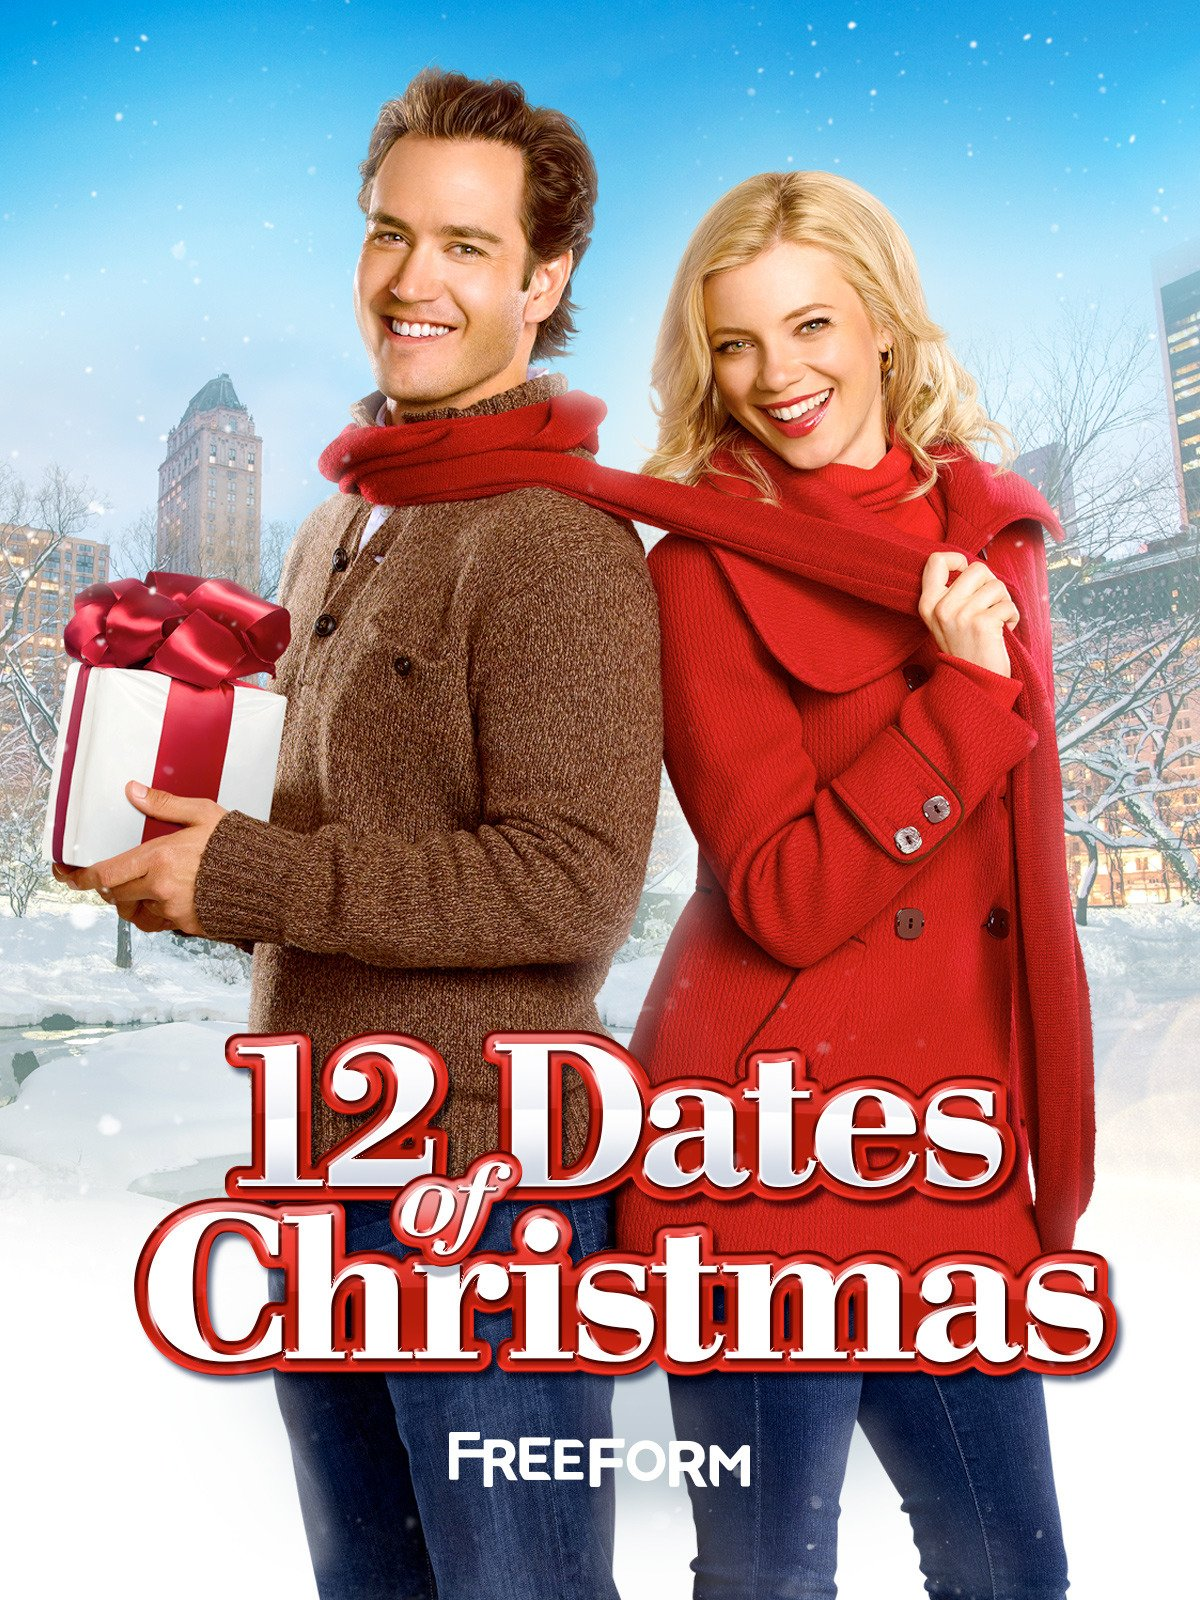 amazoncom 12 dates of christmas james hayman amazon digital services llc - 12 Dates Of Christmas Movie